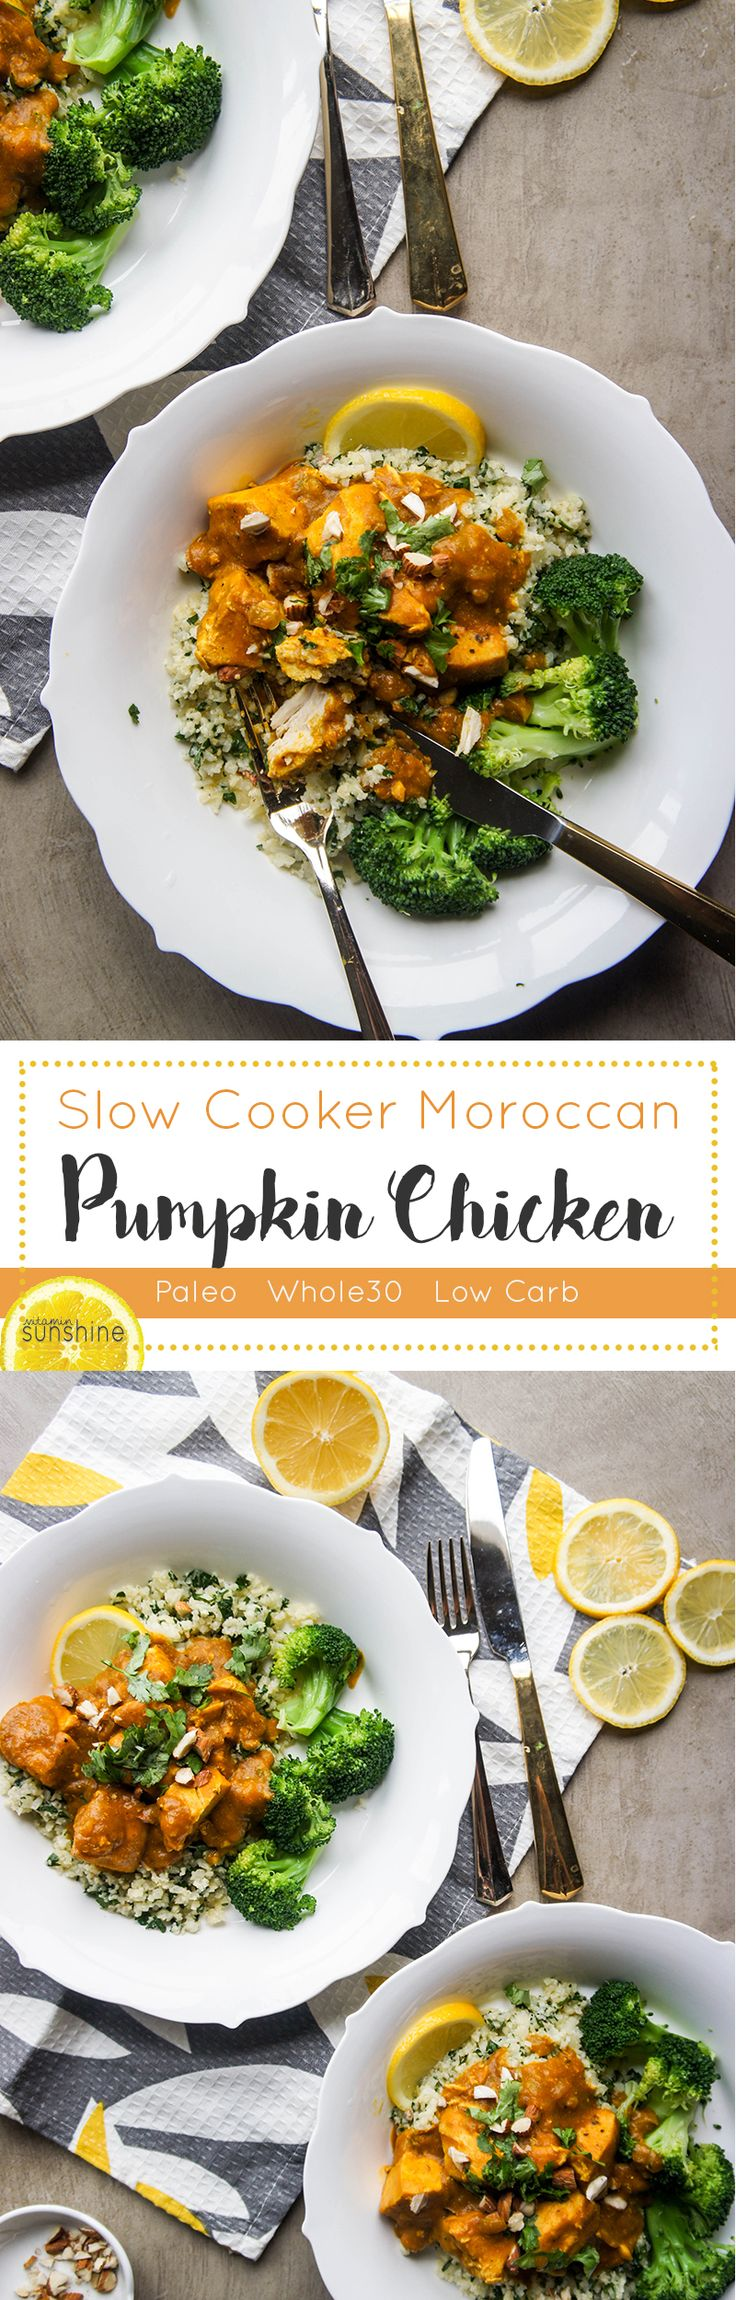 Slow Cooker Moroccan Pumpkin Chicken / Tons of flavor and spice #Paleo #Whole30 #chicken #dinner #slowcooker #crockpot